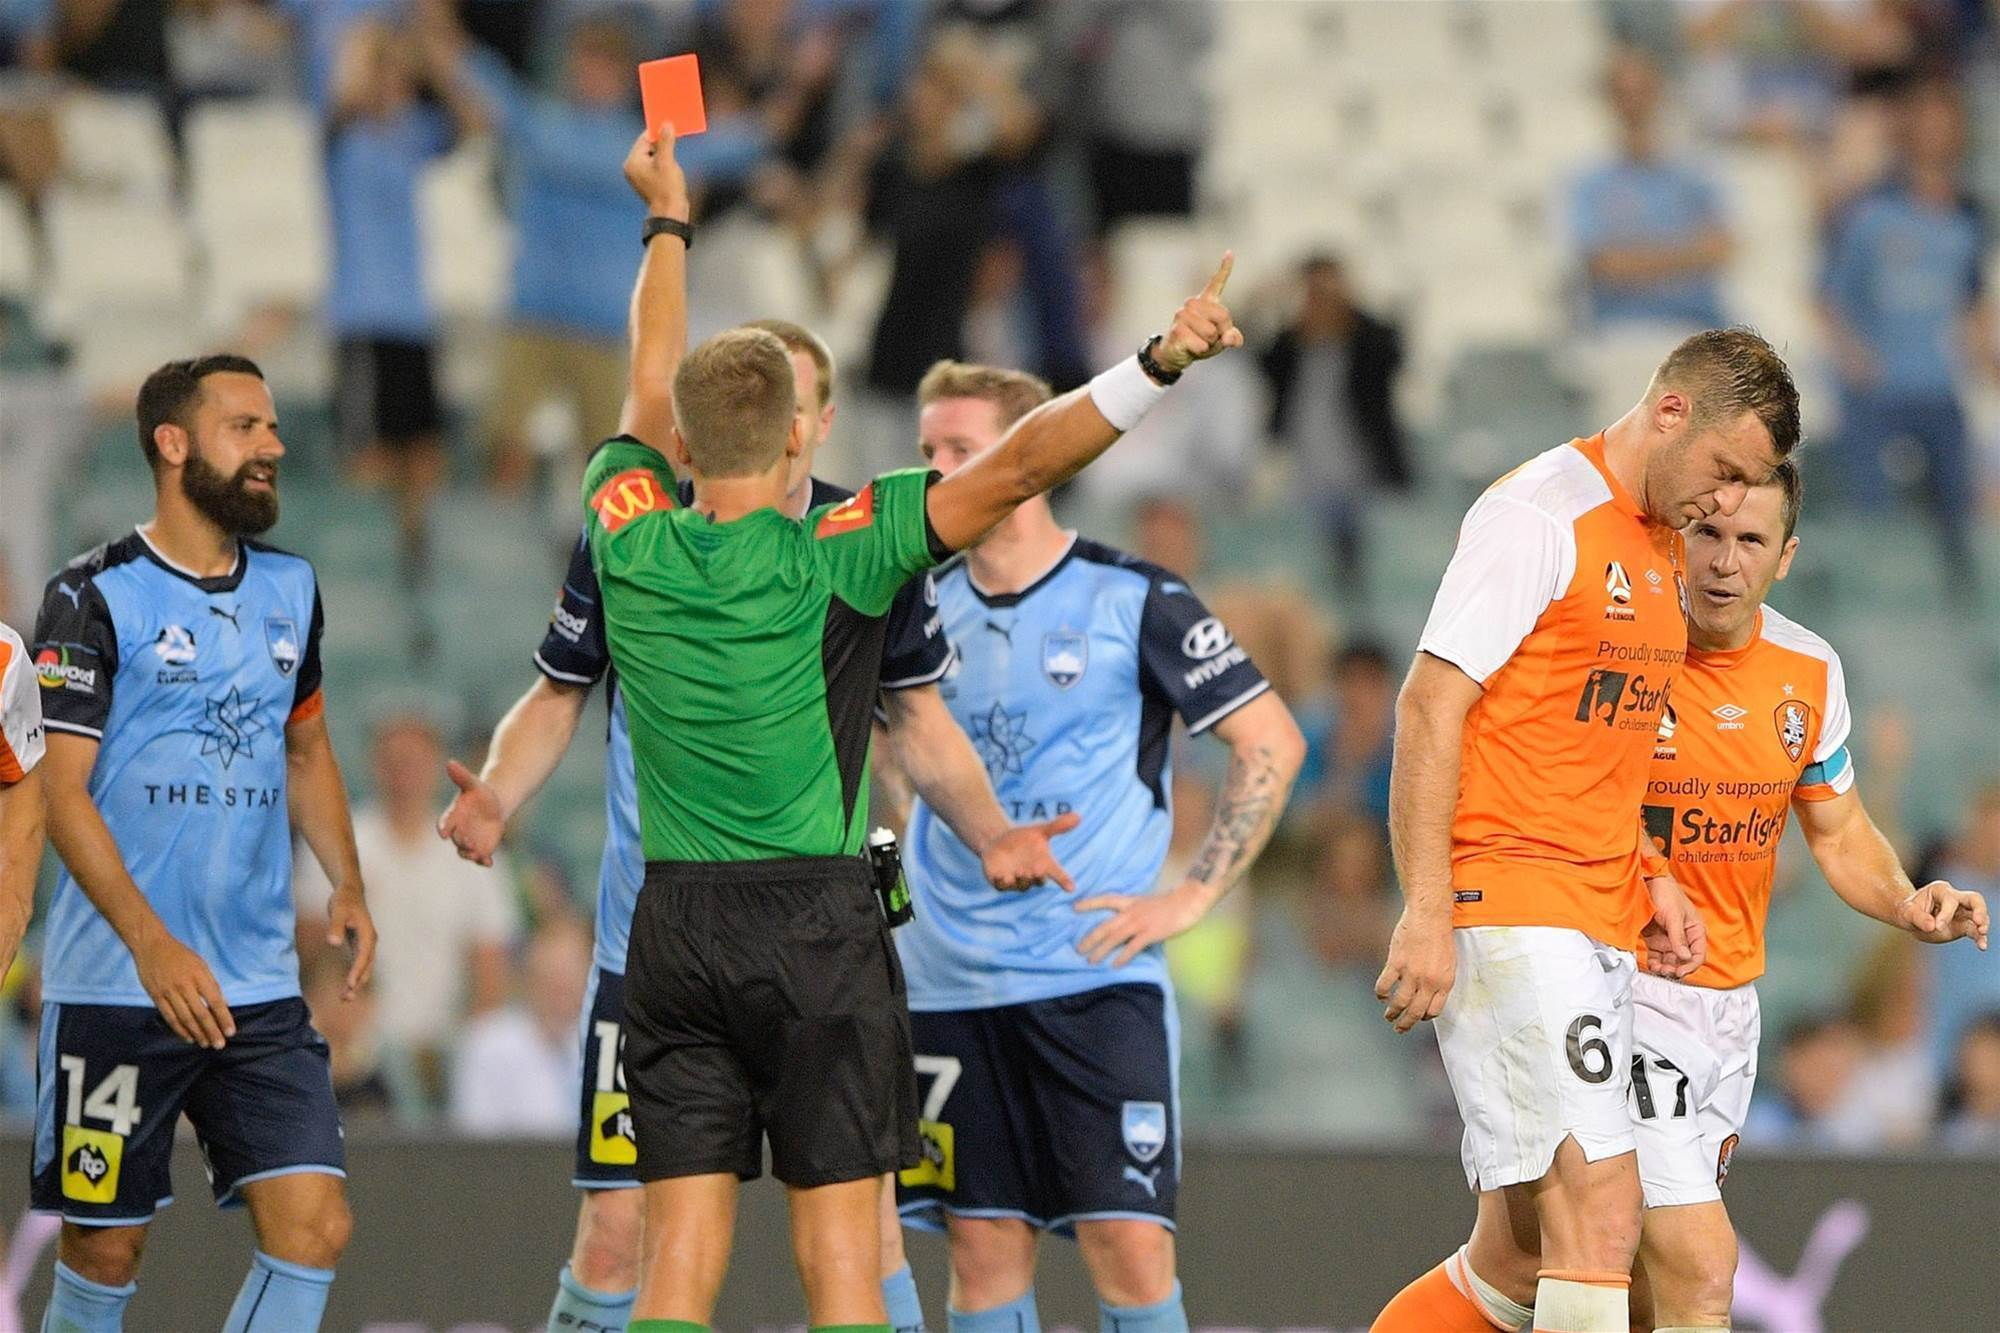 VAR uproar leads to rule changes by A-League